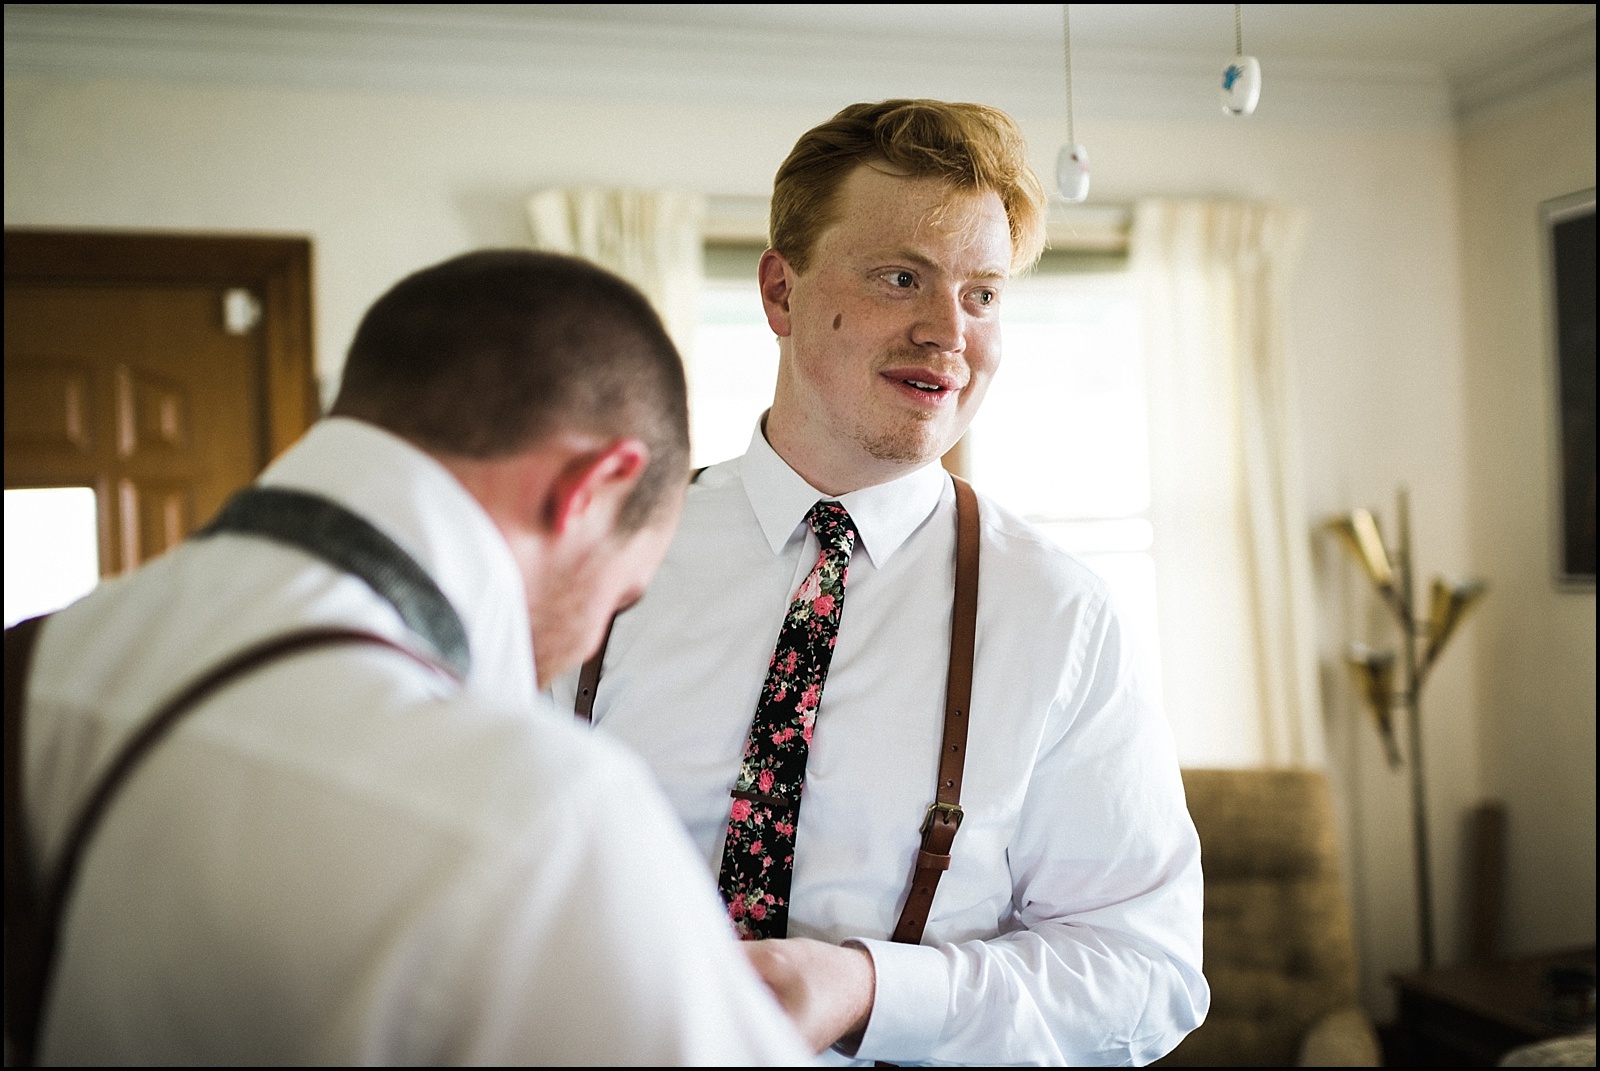 Groom with tie on